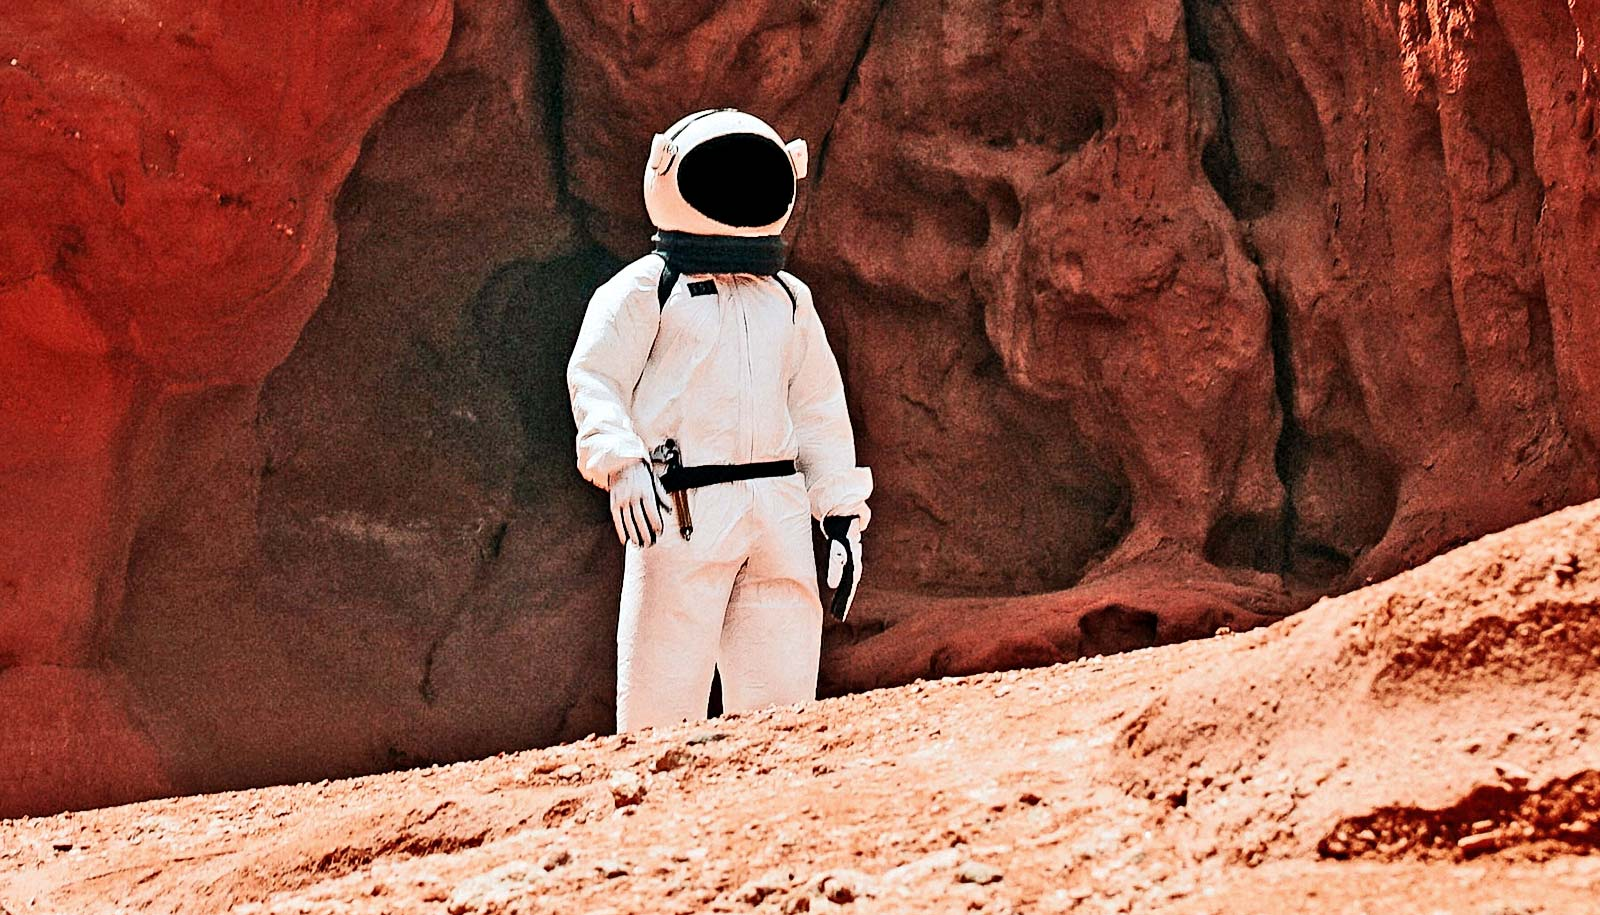 520-day simulated Mars mission changes crew's gut bacteria